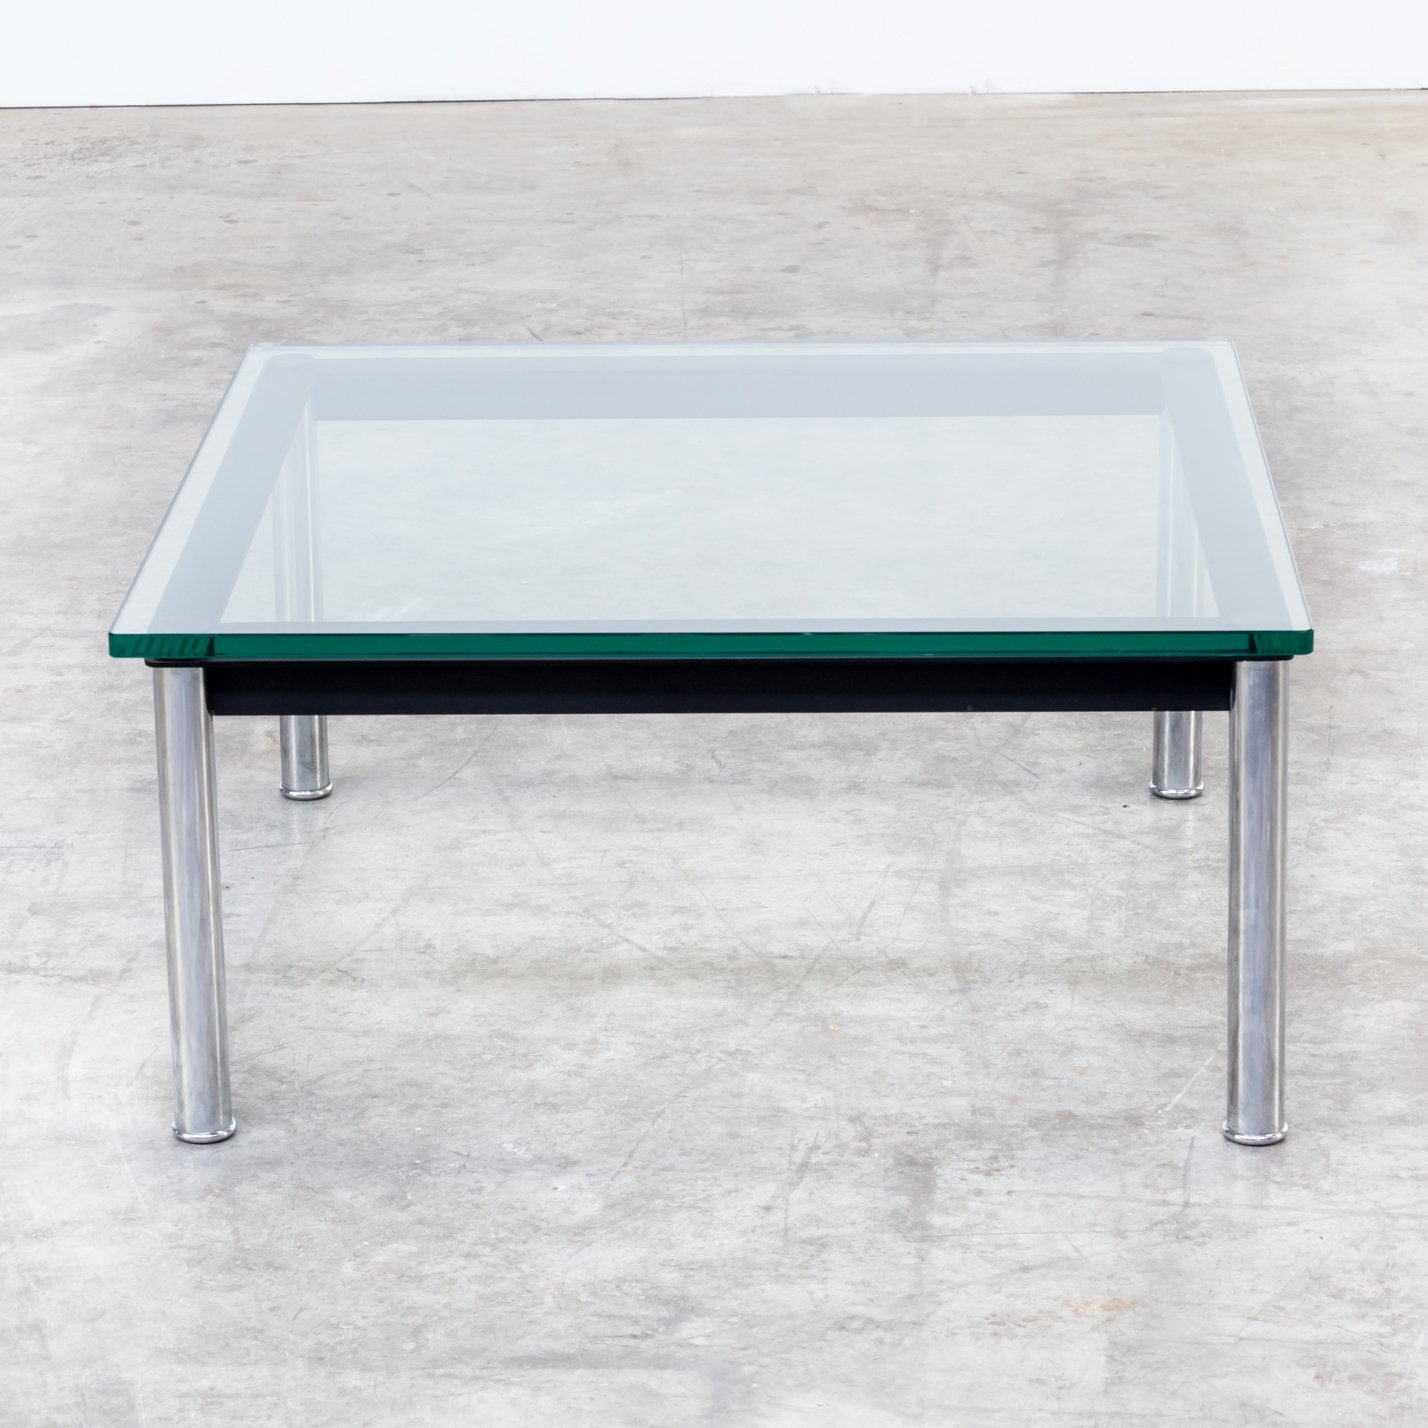 Lc10p Coffee Table From The Eighties By Le Corbusier Charlotte Perriand For Cassina 62683